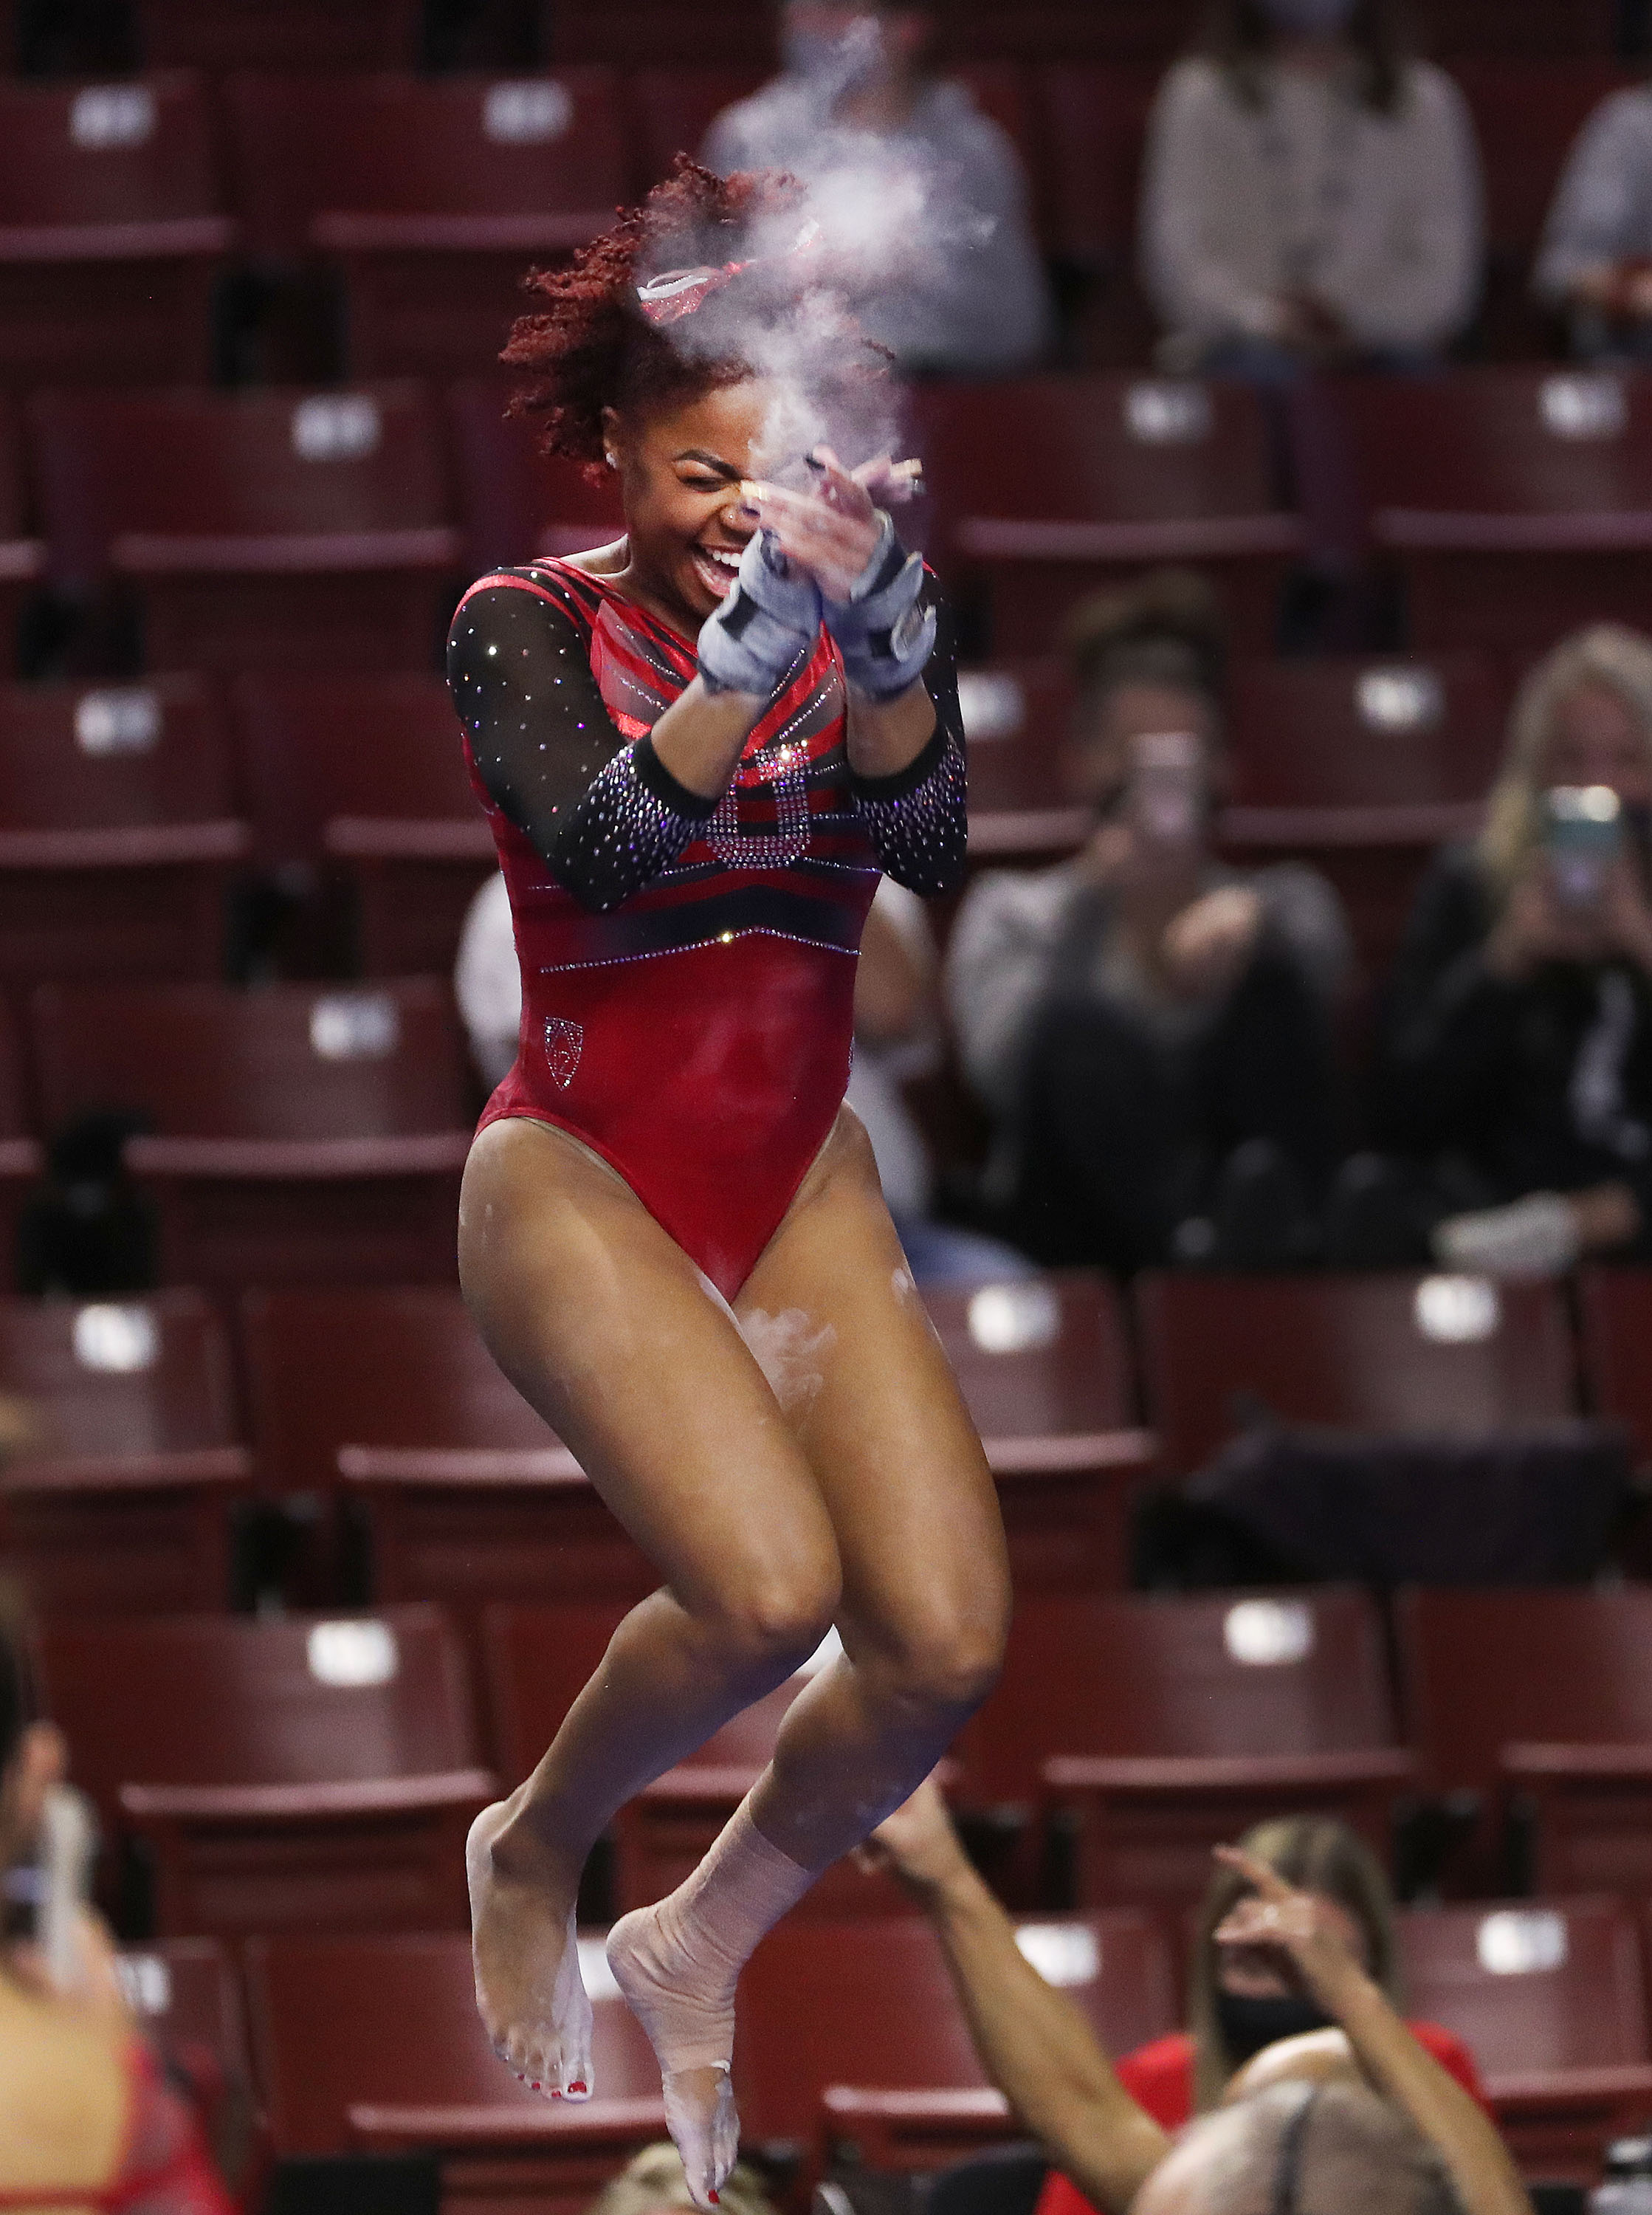 Utah's Cammy Hall reacts after competing in the vault during the Rio Tinto Best of Utah NCAA gymnastics meet at the Maverik Center in West Valley City on Saturday, Jan. 9, 2021.